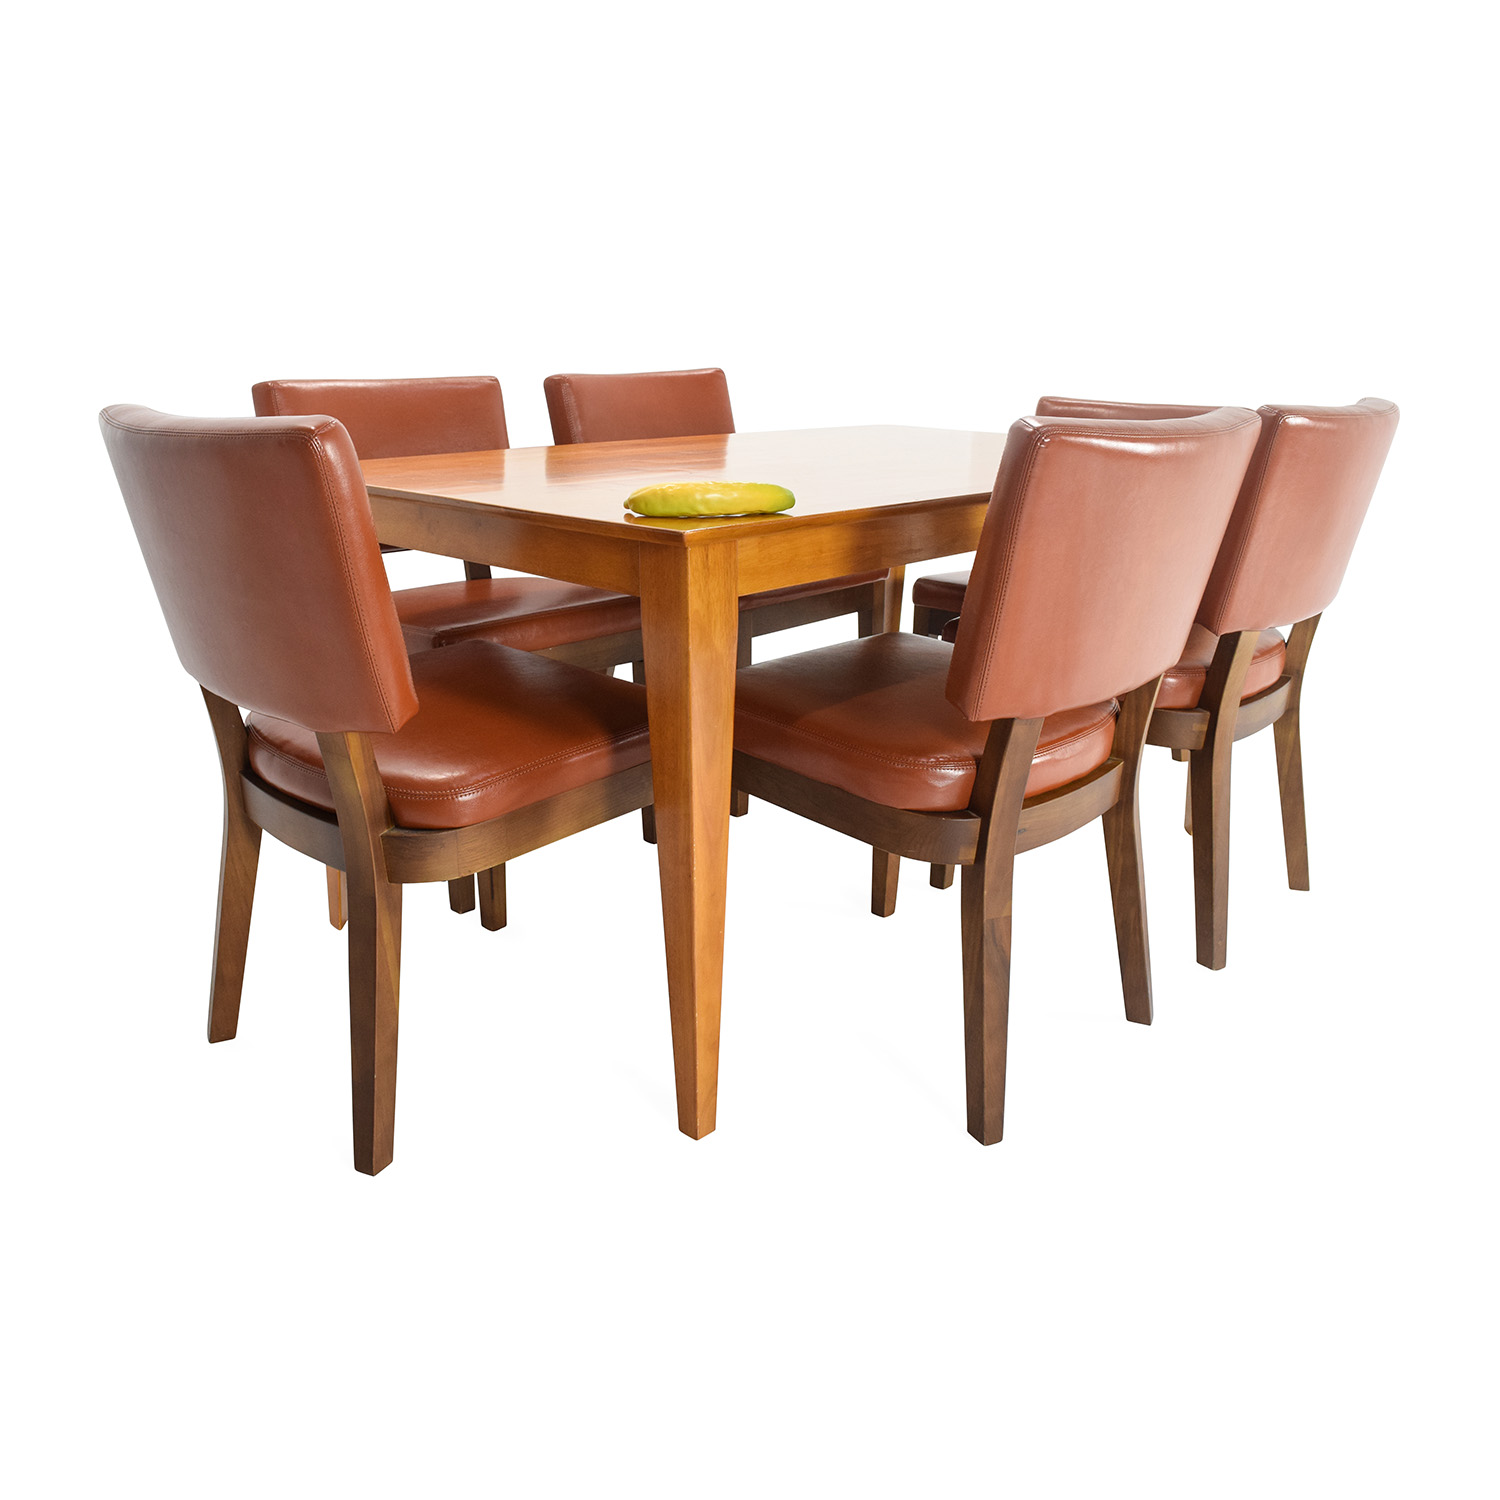 ... Cost Plus World Market World Market Dining Room Set Dimensions ...